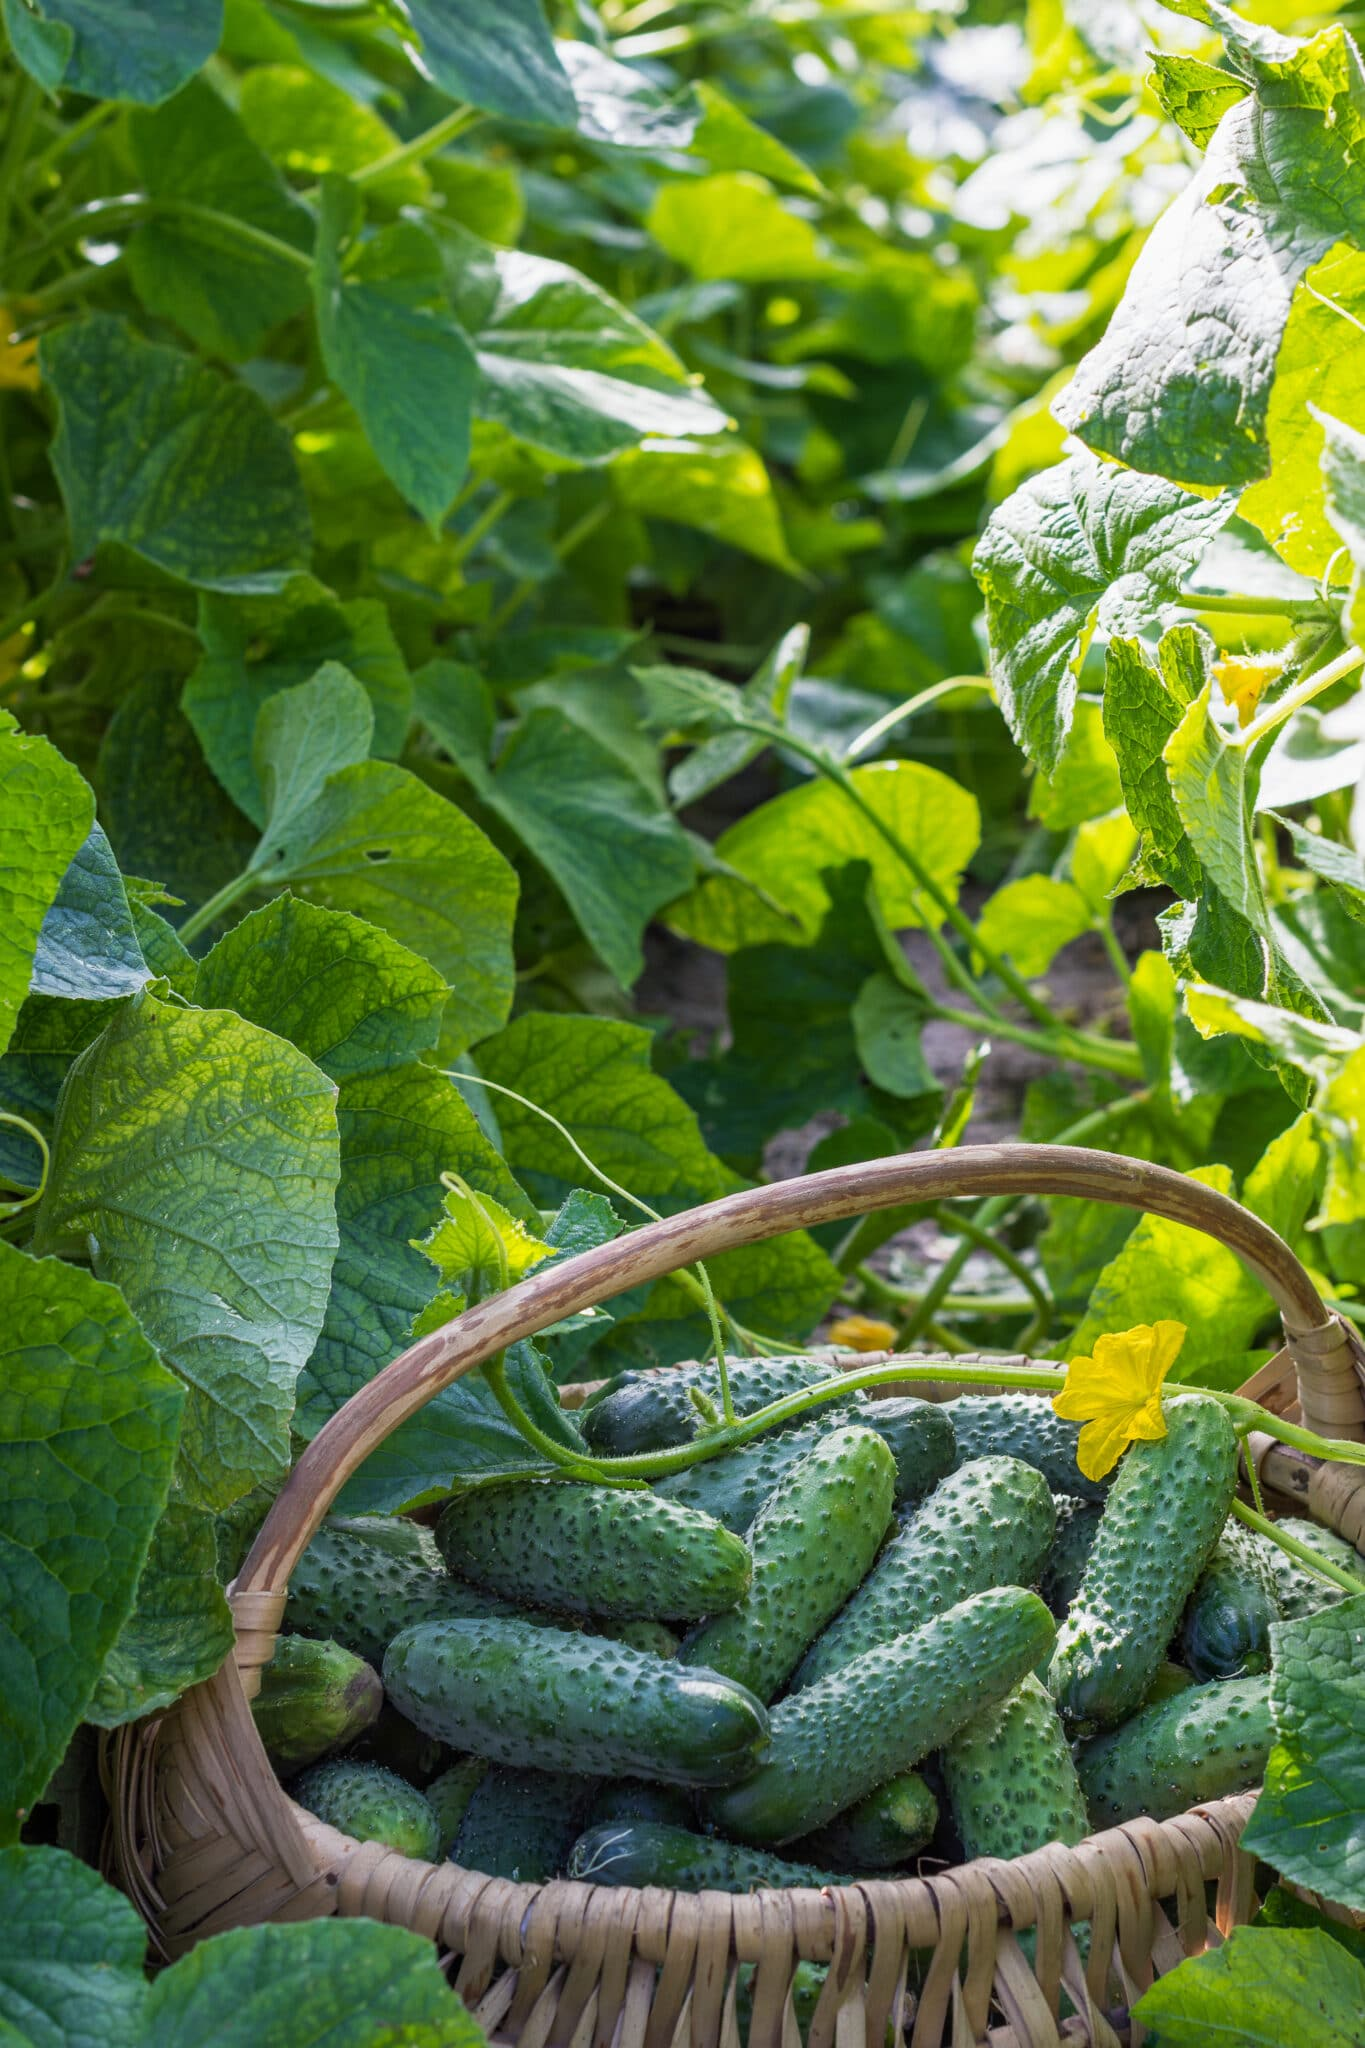 A basket full of extra cucumbers amidst cucumber vines in the garden.